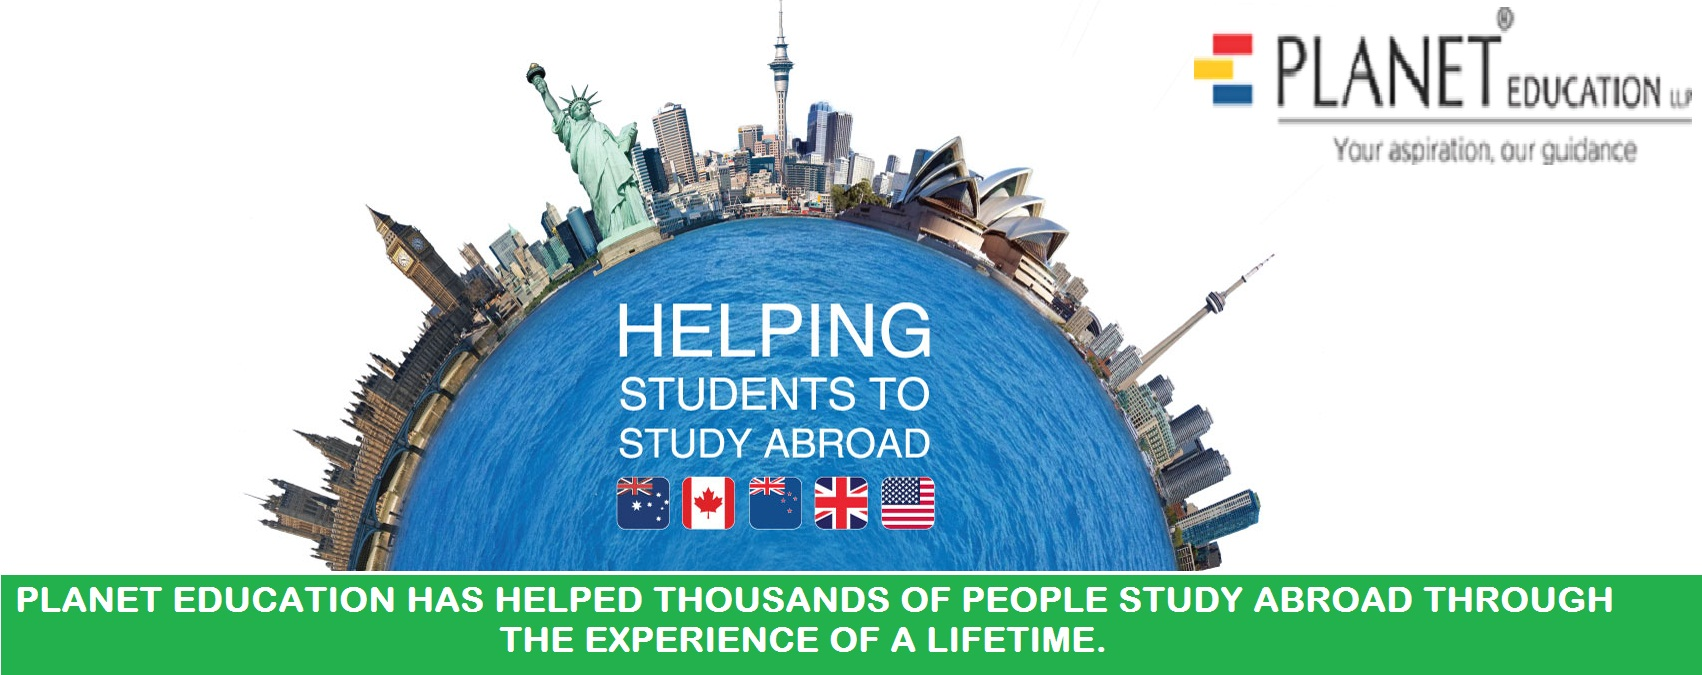 study in local university is better than abroad Study abroad this summer with forum-nexus visit 5 amazing cities in 35 weeks and earn up to 9 credits students from the us and other countries travel together taking classes, visiting universities, companies, and international organizations.